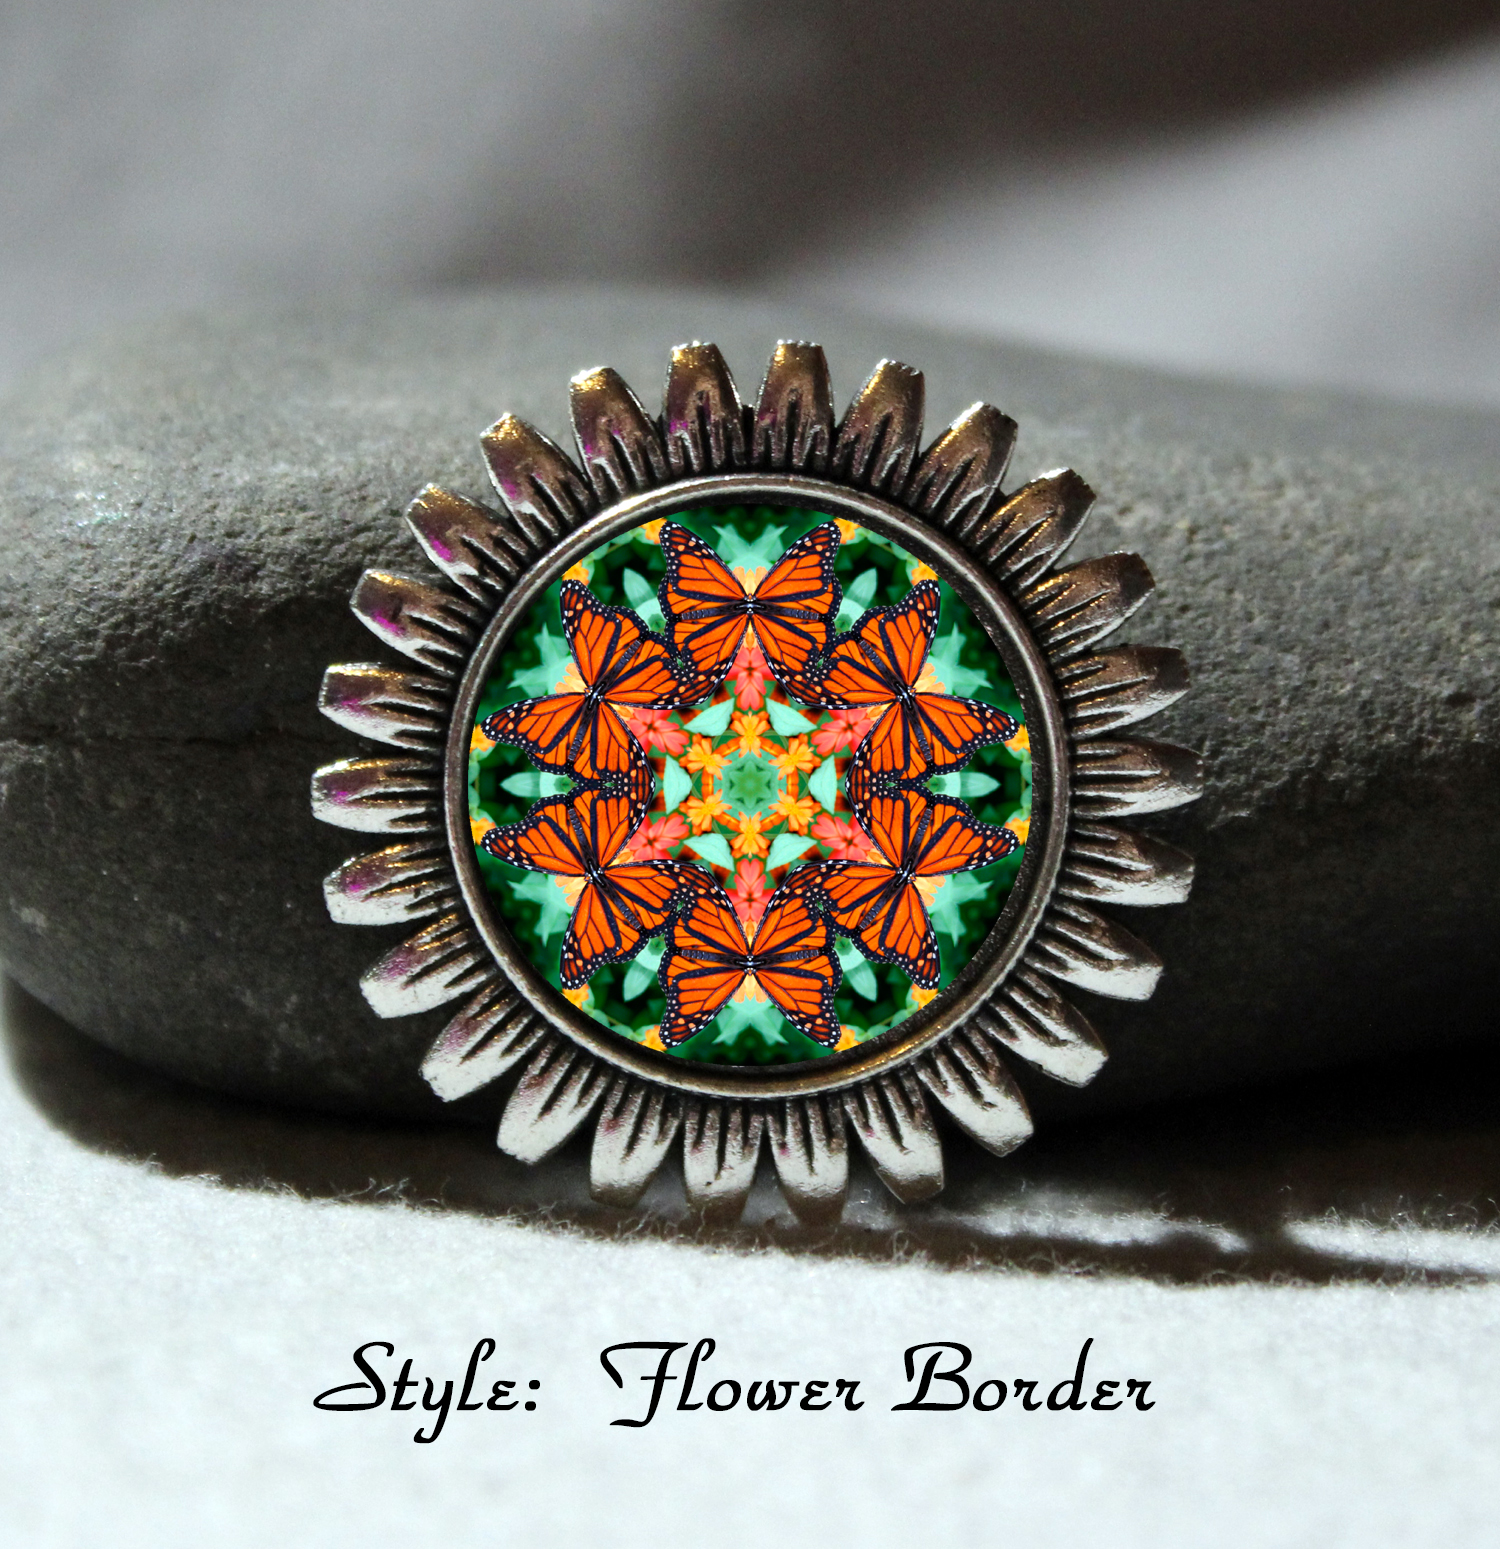 Brooch Lapel Pin Collar Pin Hat Pin Scarf Pin Monarch Butterfly Mandala Sacred Geometry Unique Gift For Her A Myriad Of Maitri